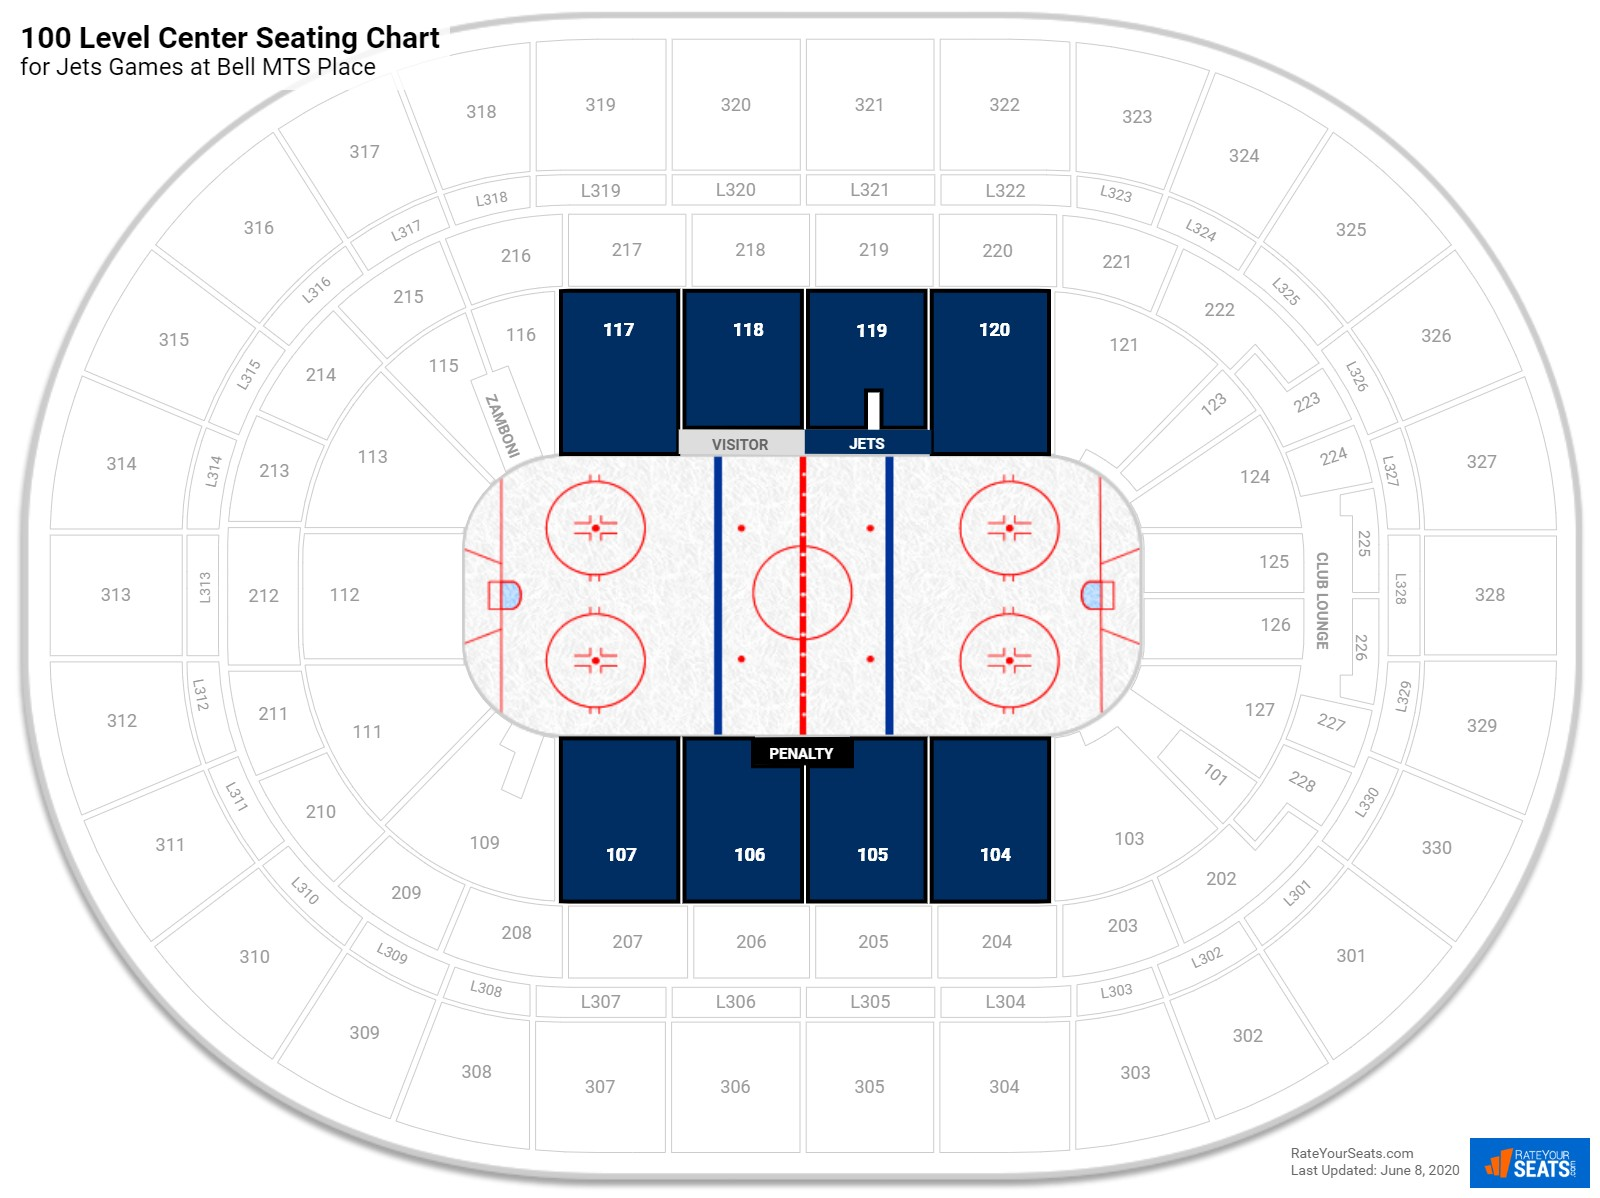 MTS Centre 100 Level Center seating chart